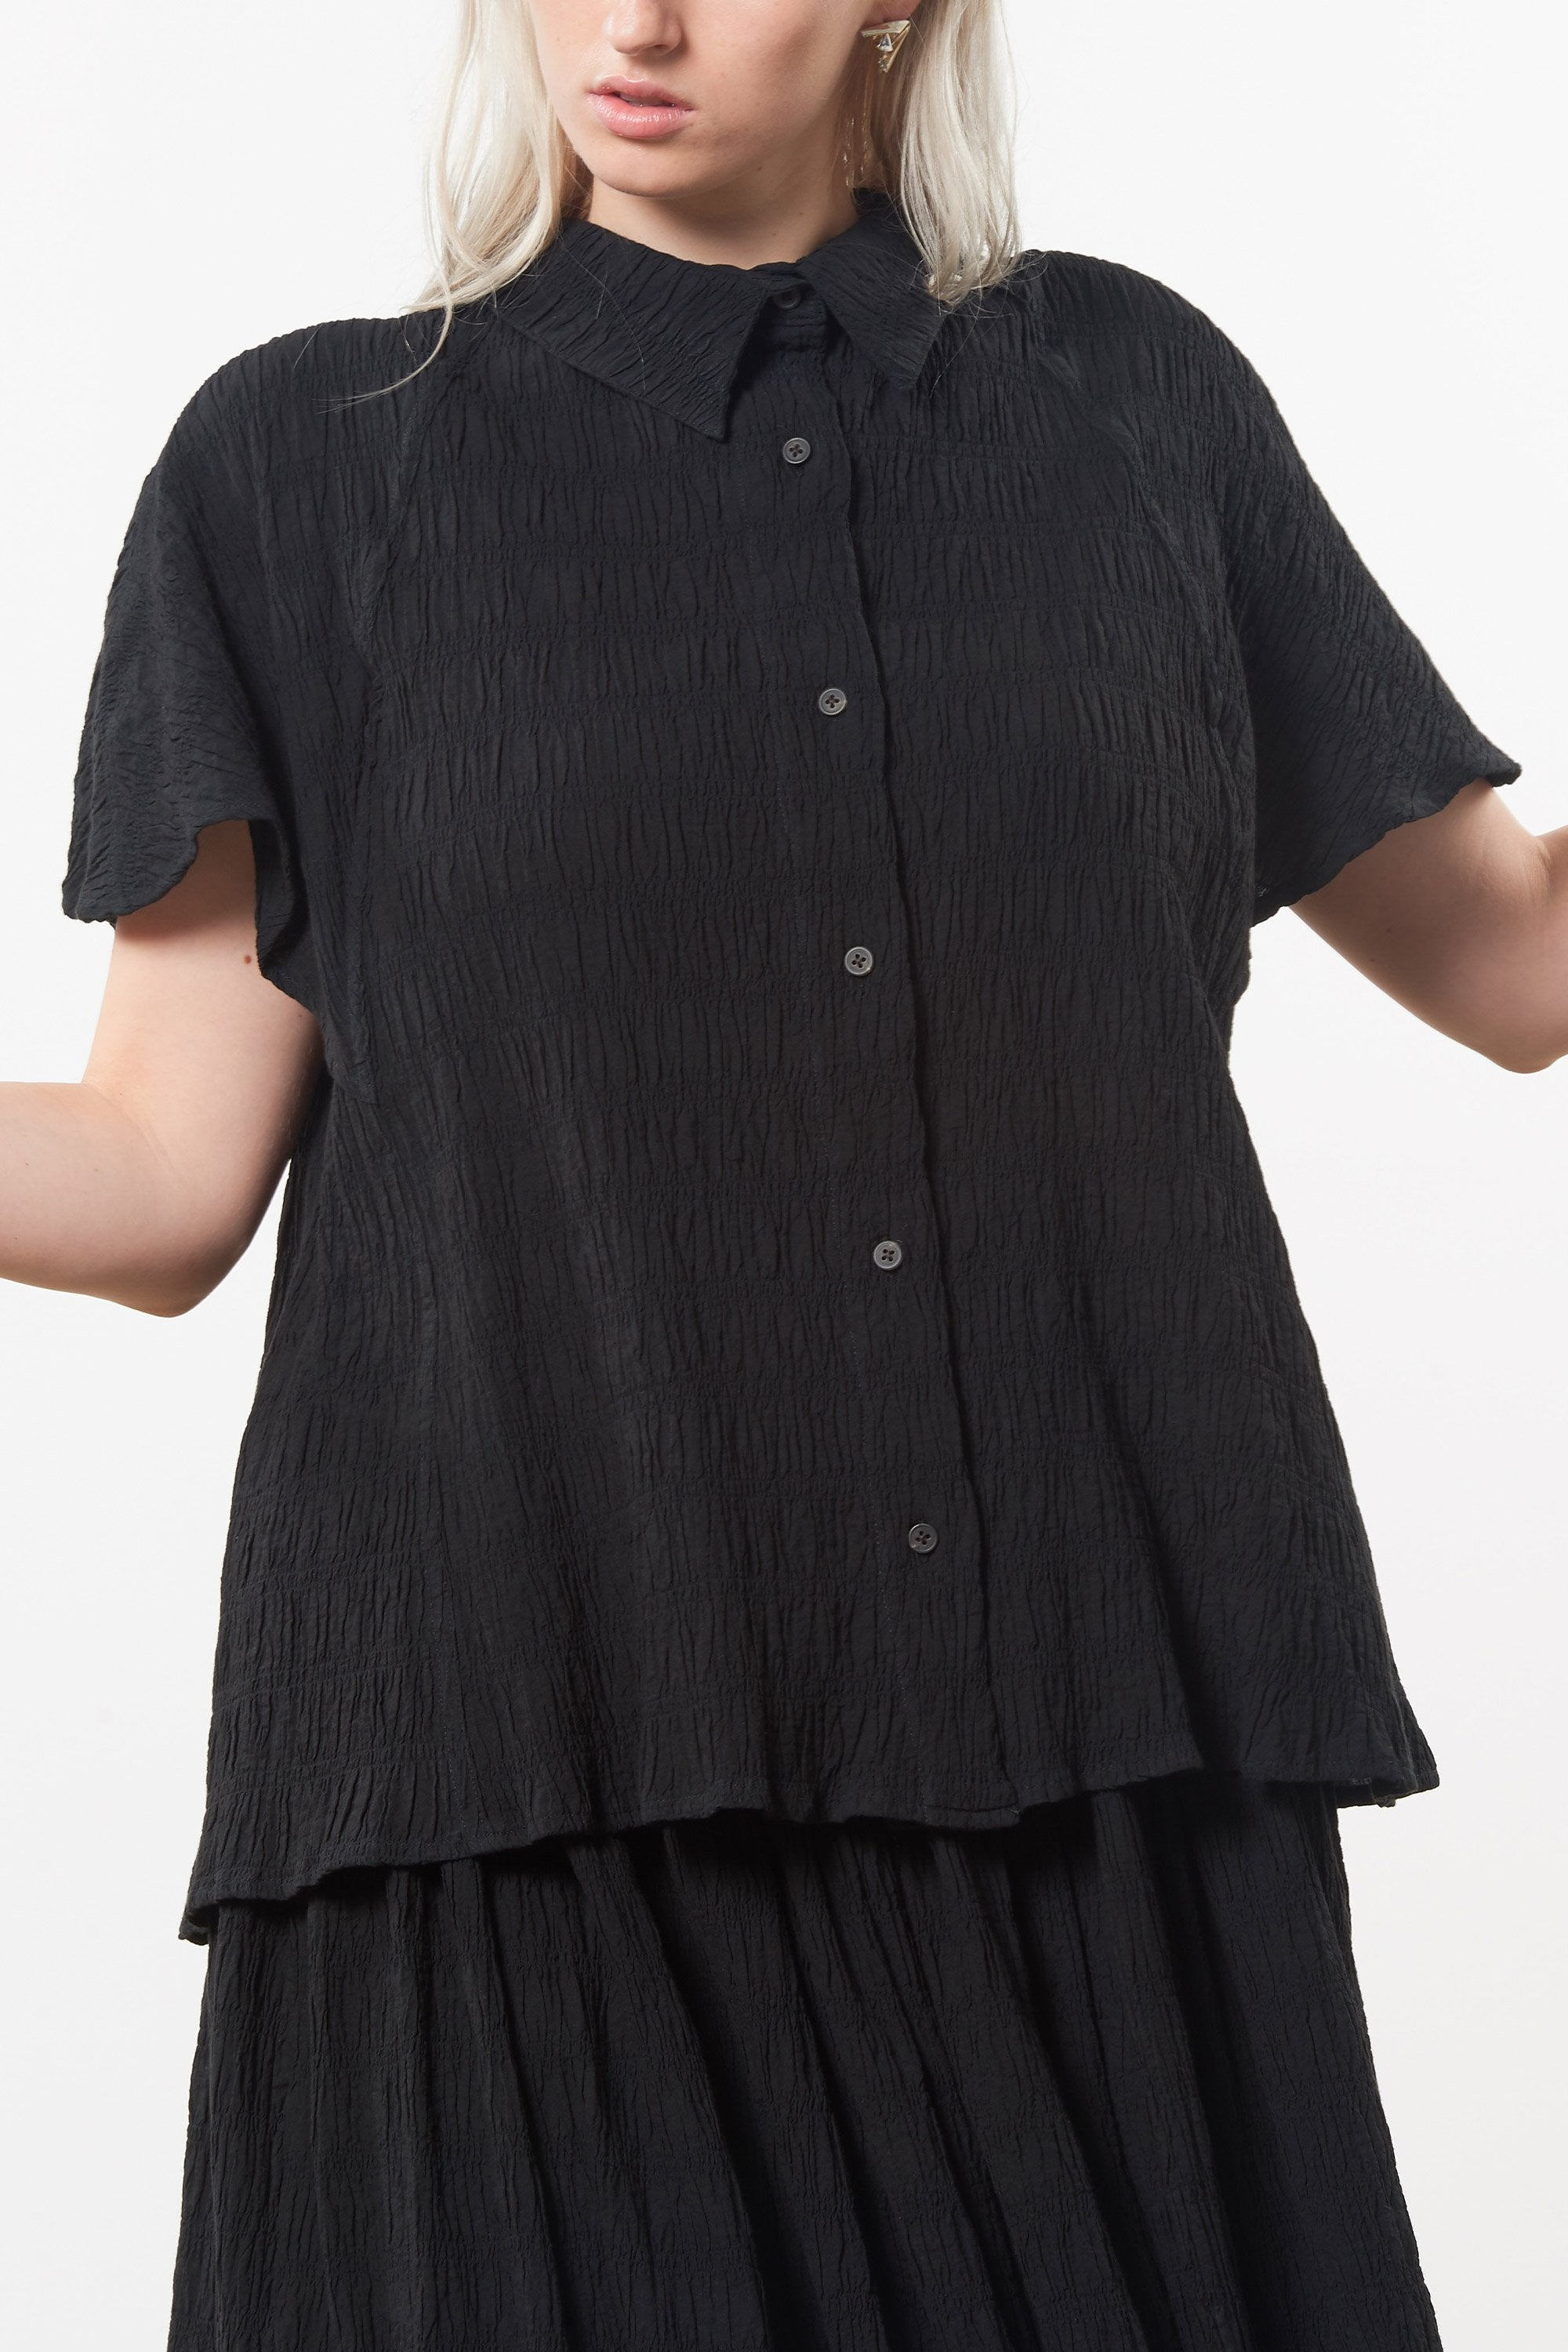 Mara Hoffman Extended Black Phebe Top in organic cotton (front detail)